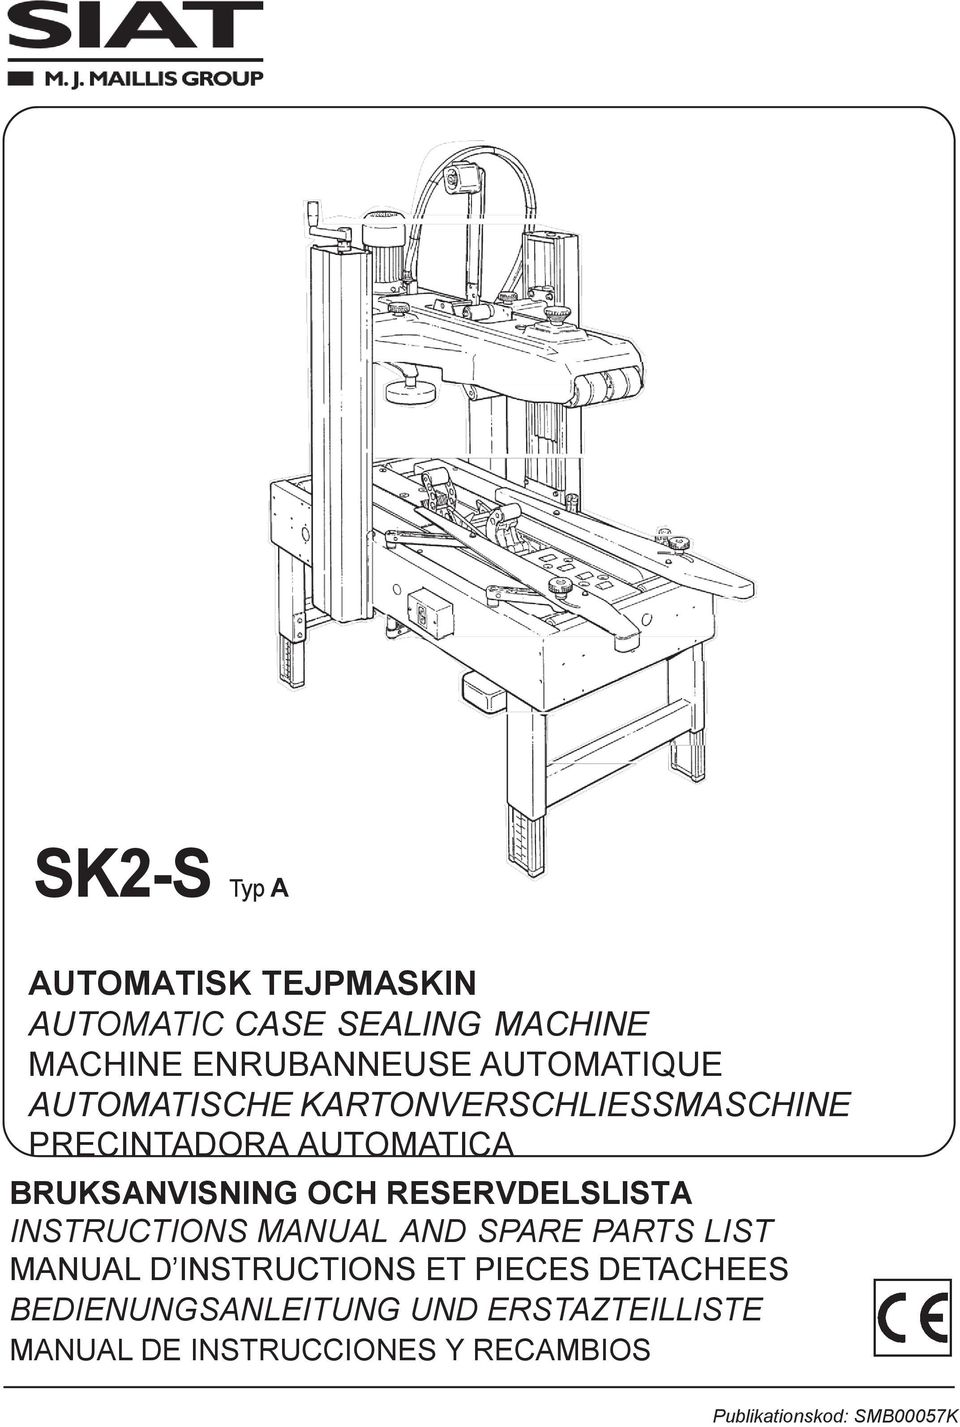 RESERVDELSLISTA INSTRUCTIONS MANUAL AND SPARE PARTS LIST MANUAL D INSTRUCTIONS ET PIECES